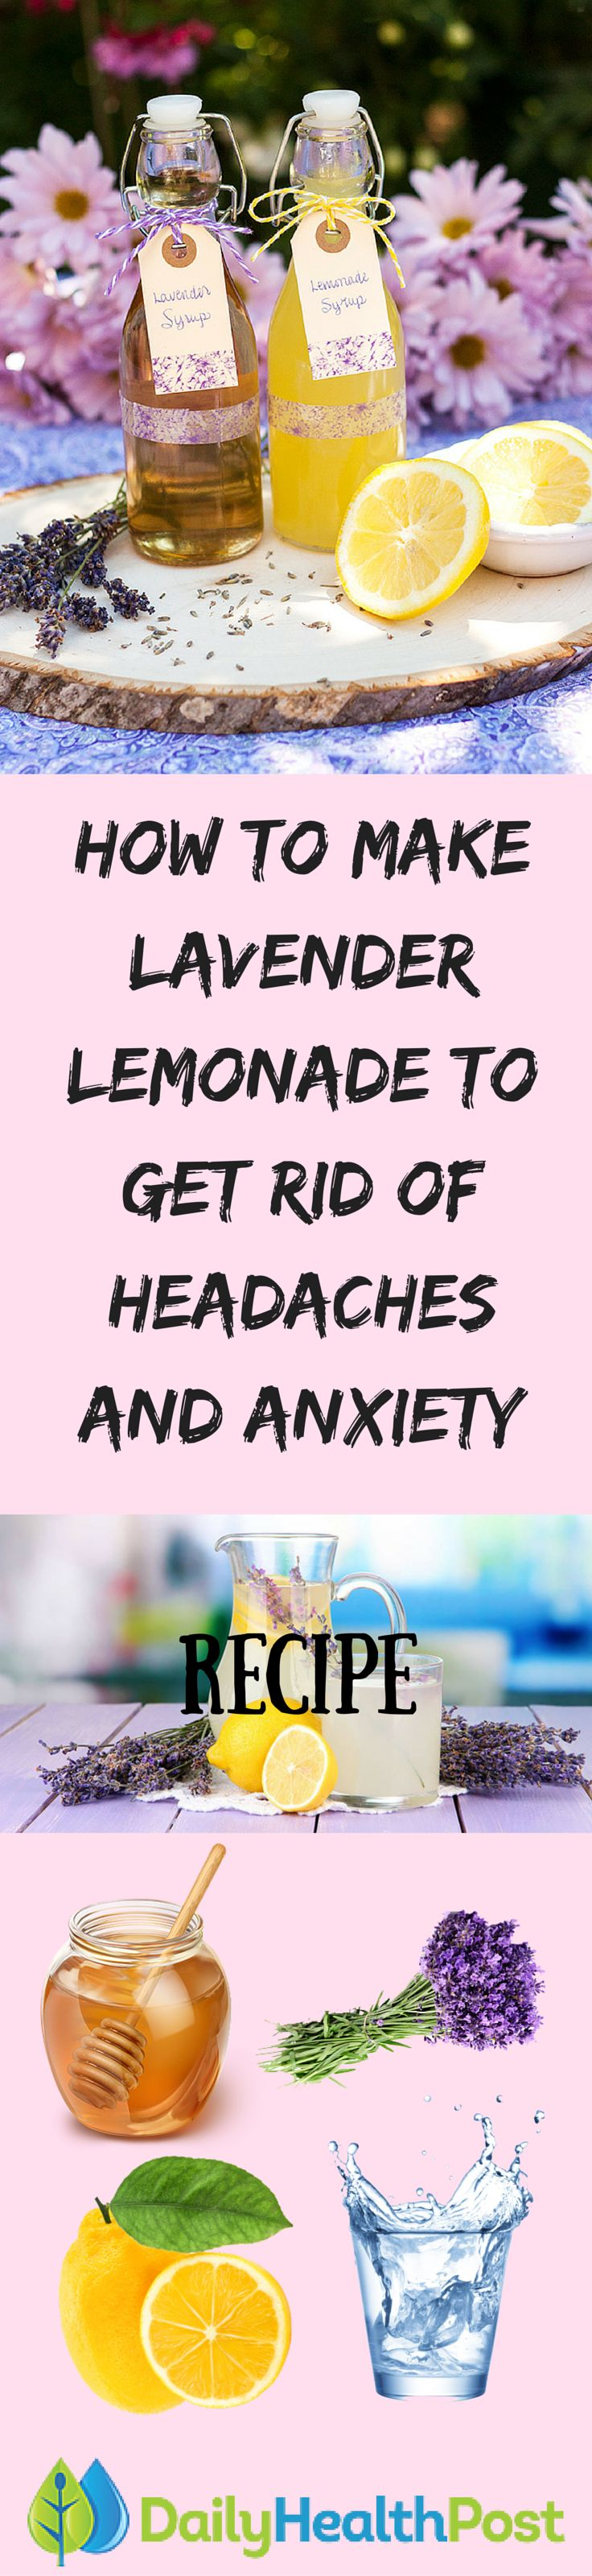 Got a headache that just won't go away? Many people find that traditional over-the-counter pain relief medication is ineffective in dealing with persistent headaches, which can be caused by stress, tension, dehydration, or any number of external or internal factors.Now you can harness the effects of this herbal remedy with this simple, easy-to-make recipe for lavender-infused lemonade – a sweet drink that can also help cure even the most persistent of headaches.Kat Vaname